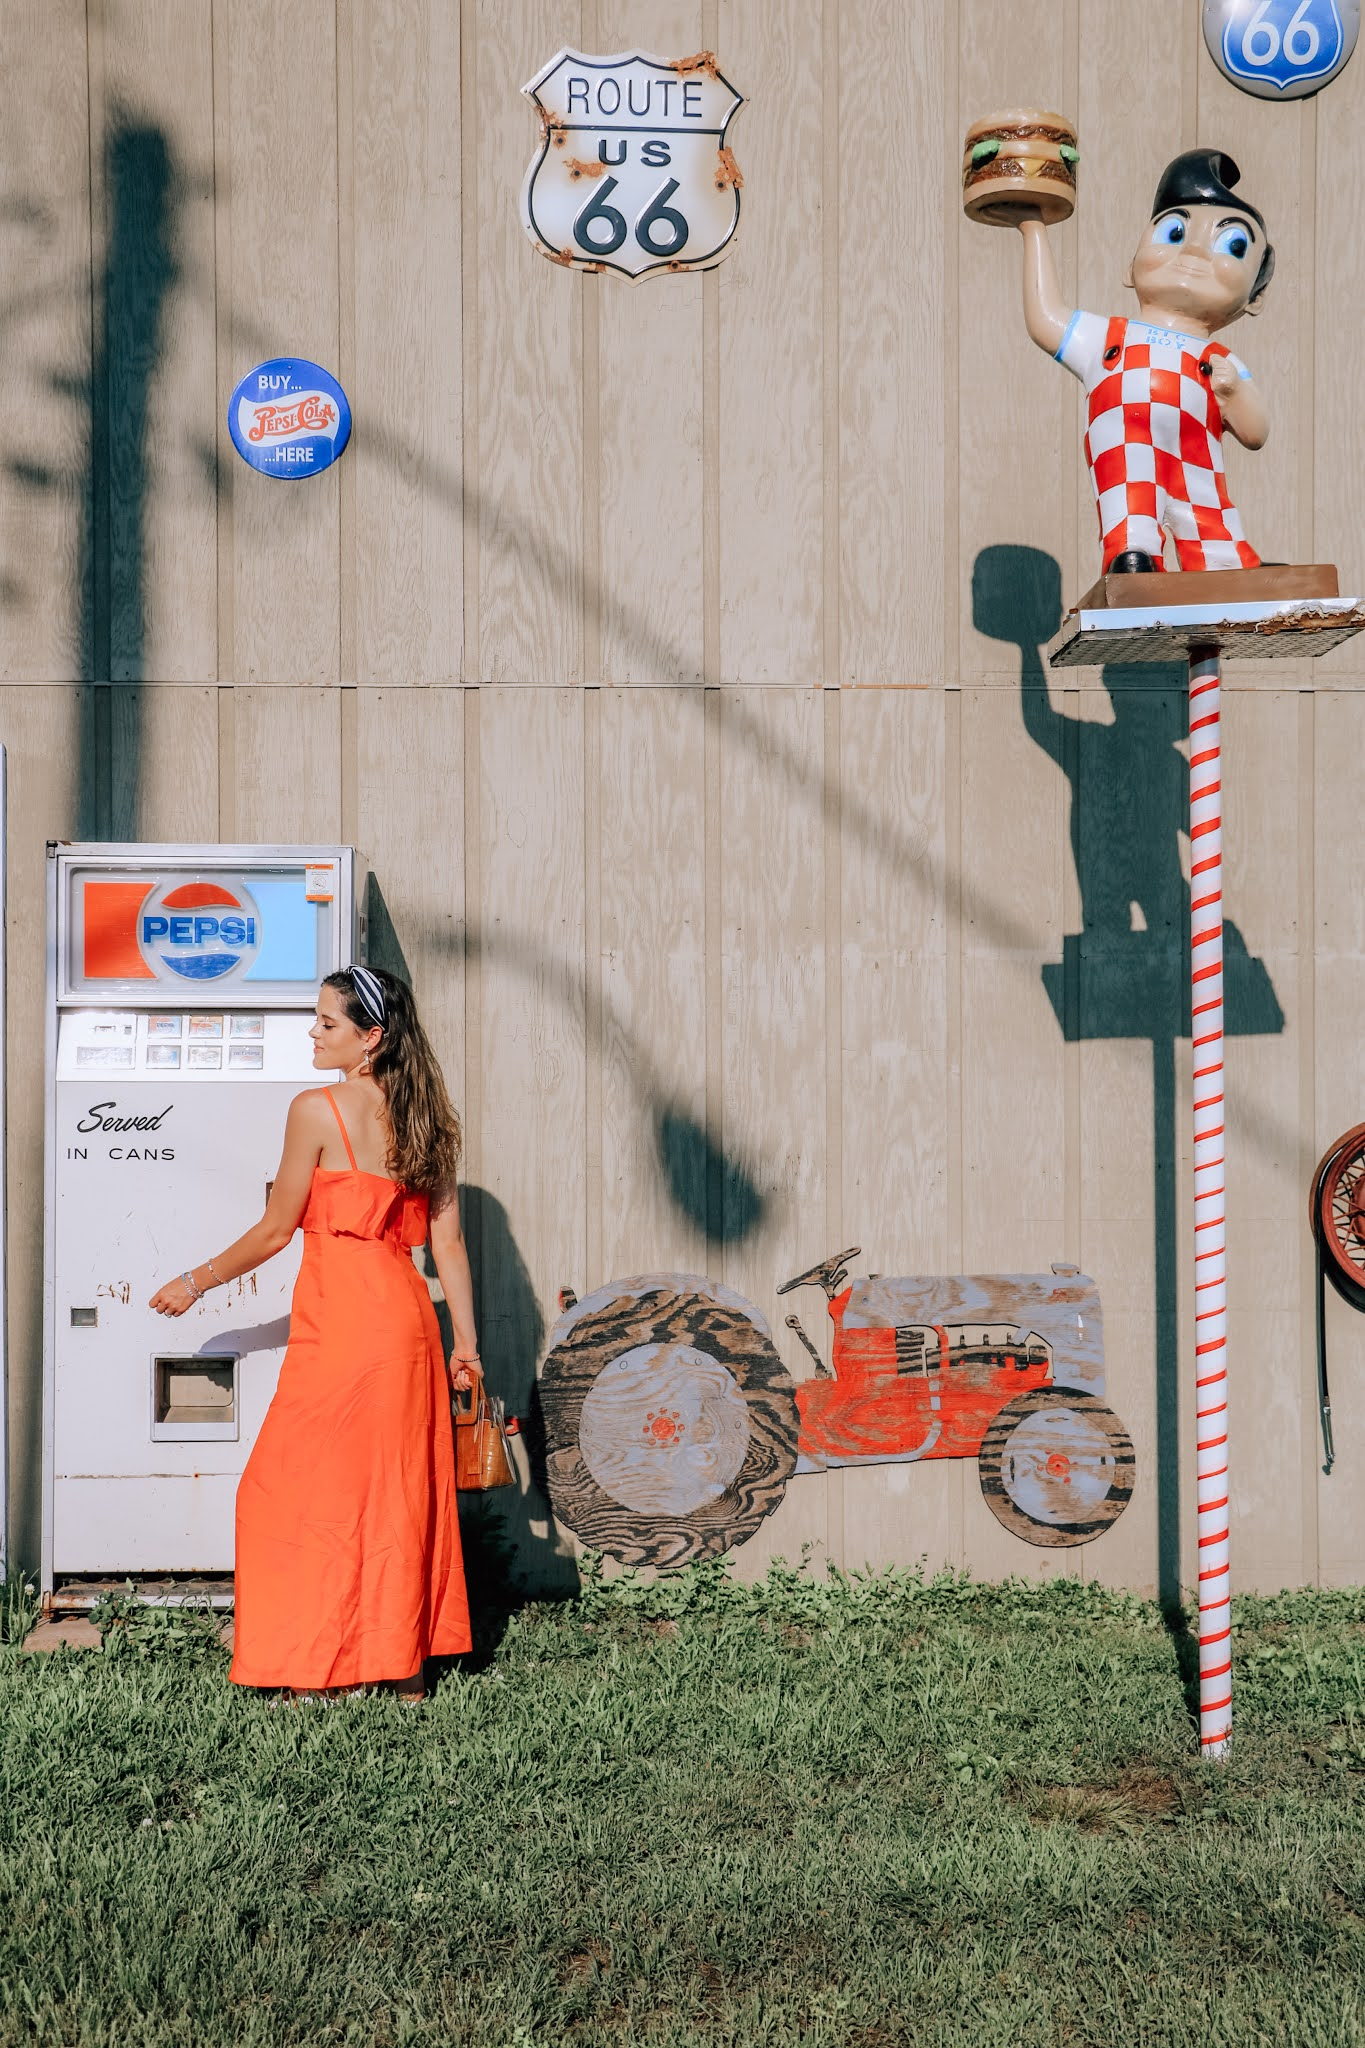 Style influencer Kathleen Harper's Route 66 photo shoot.